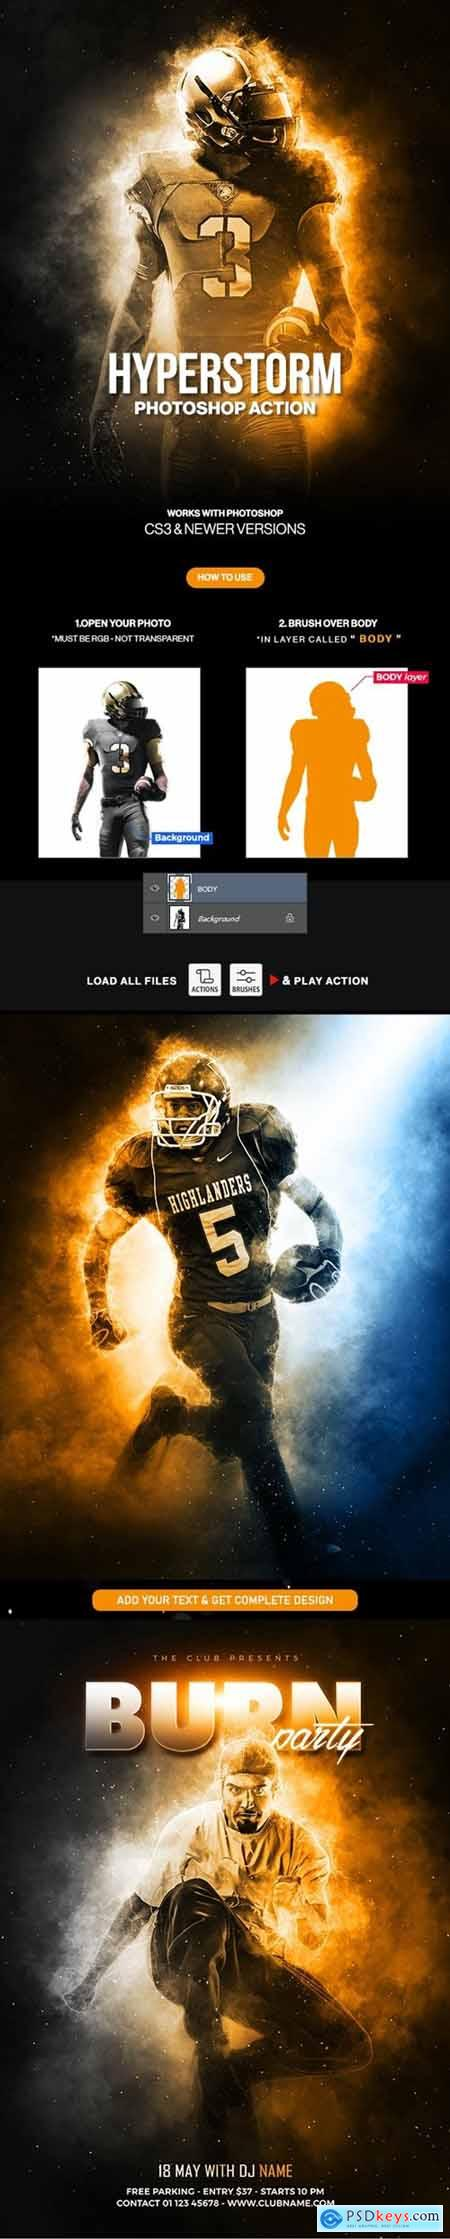 Hyperstorm Photoshop Action 30454156